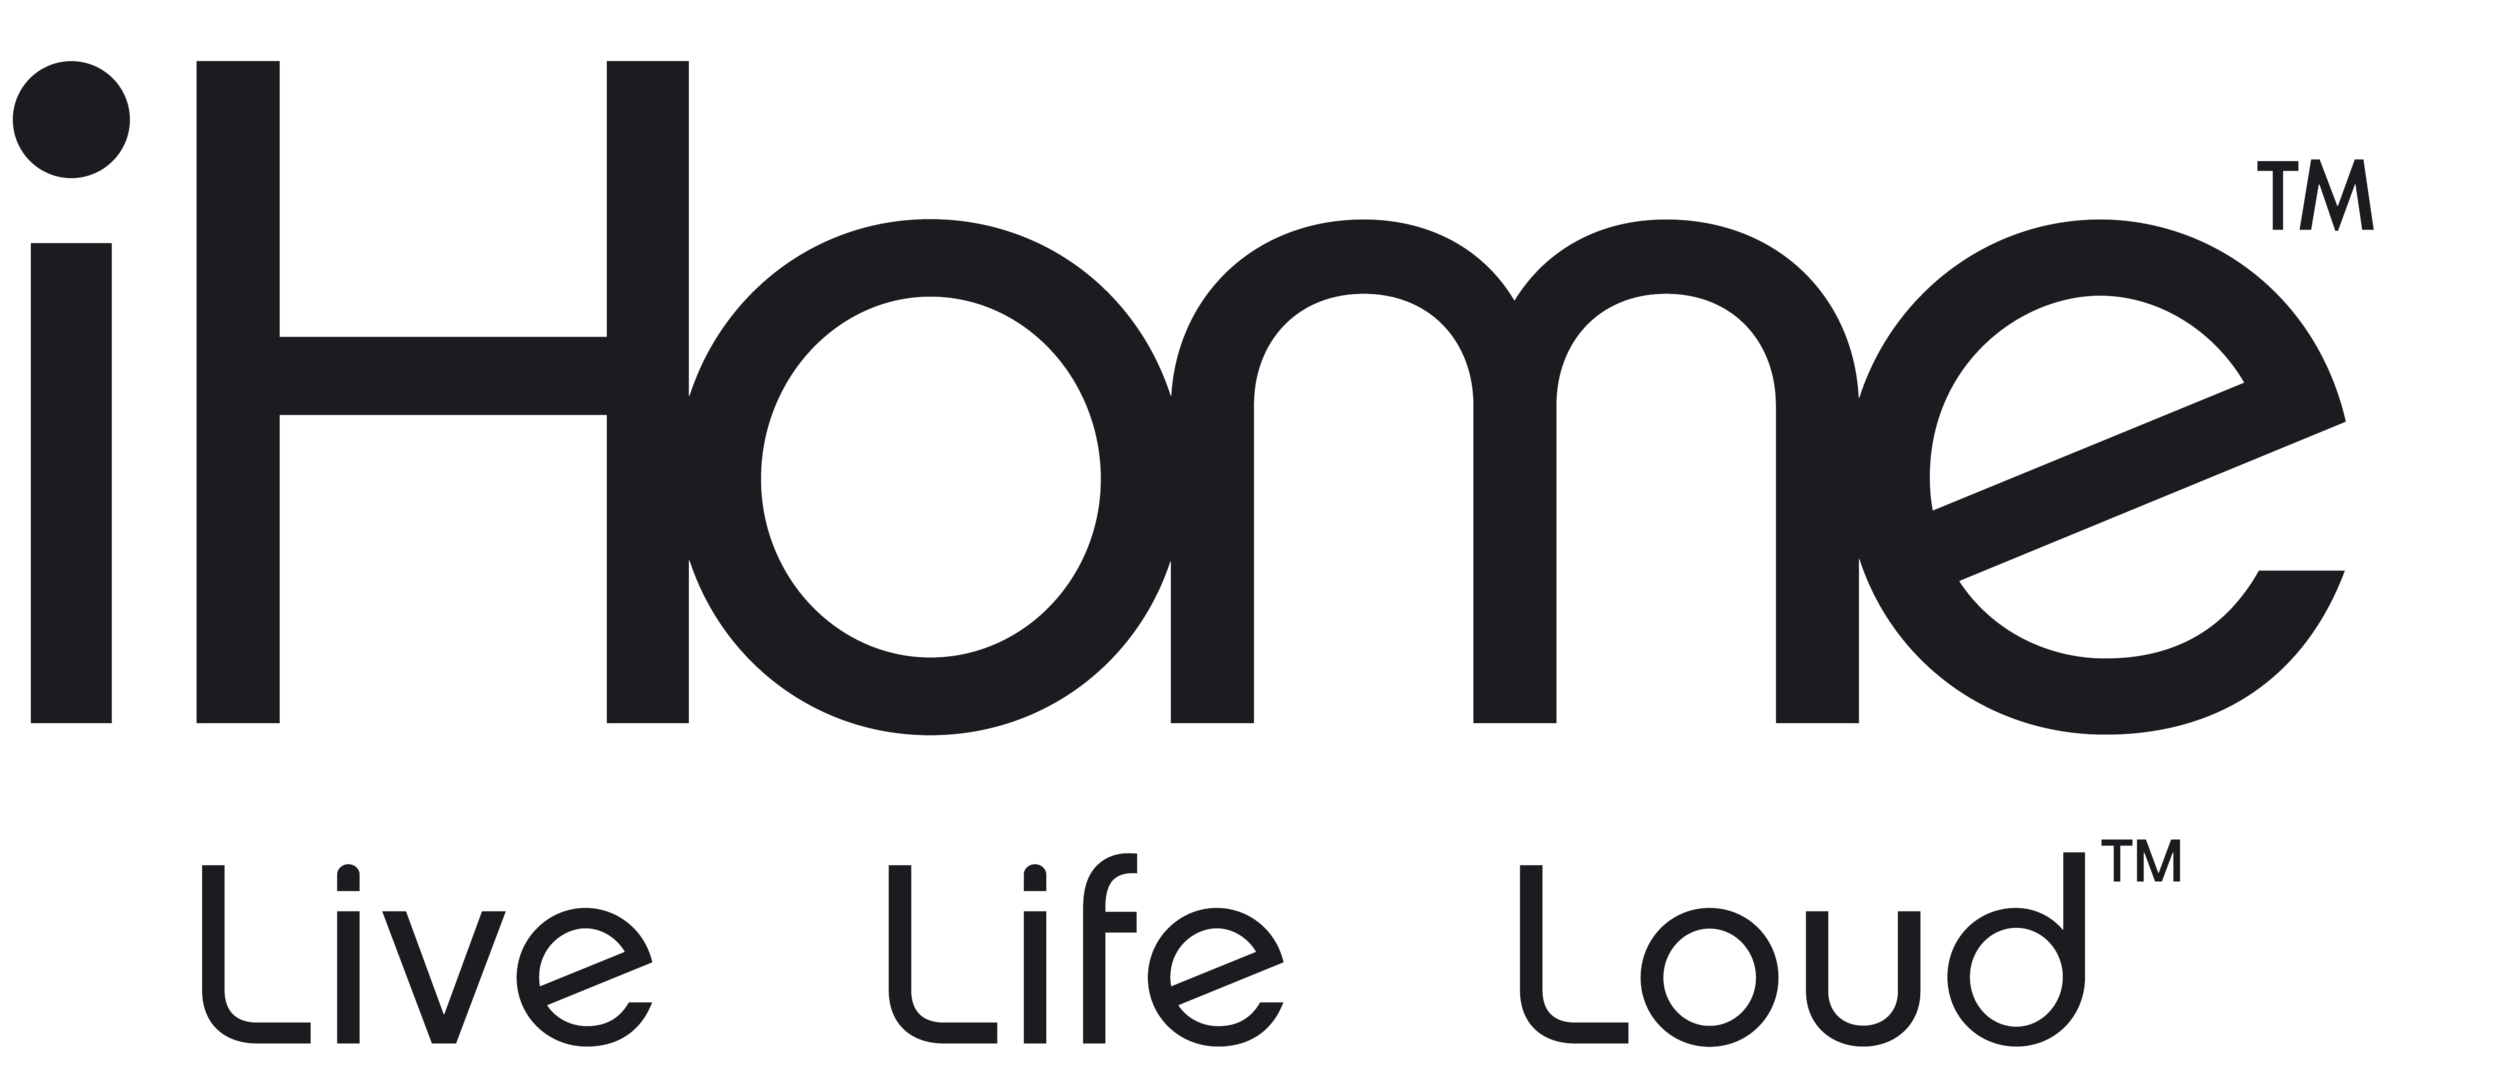 ihome_logo.png